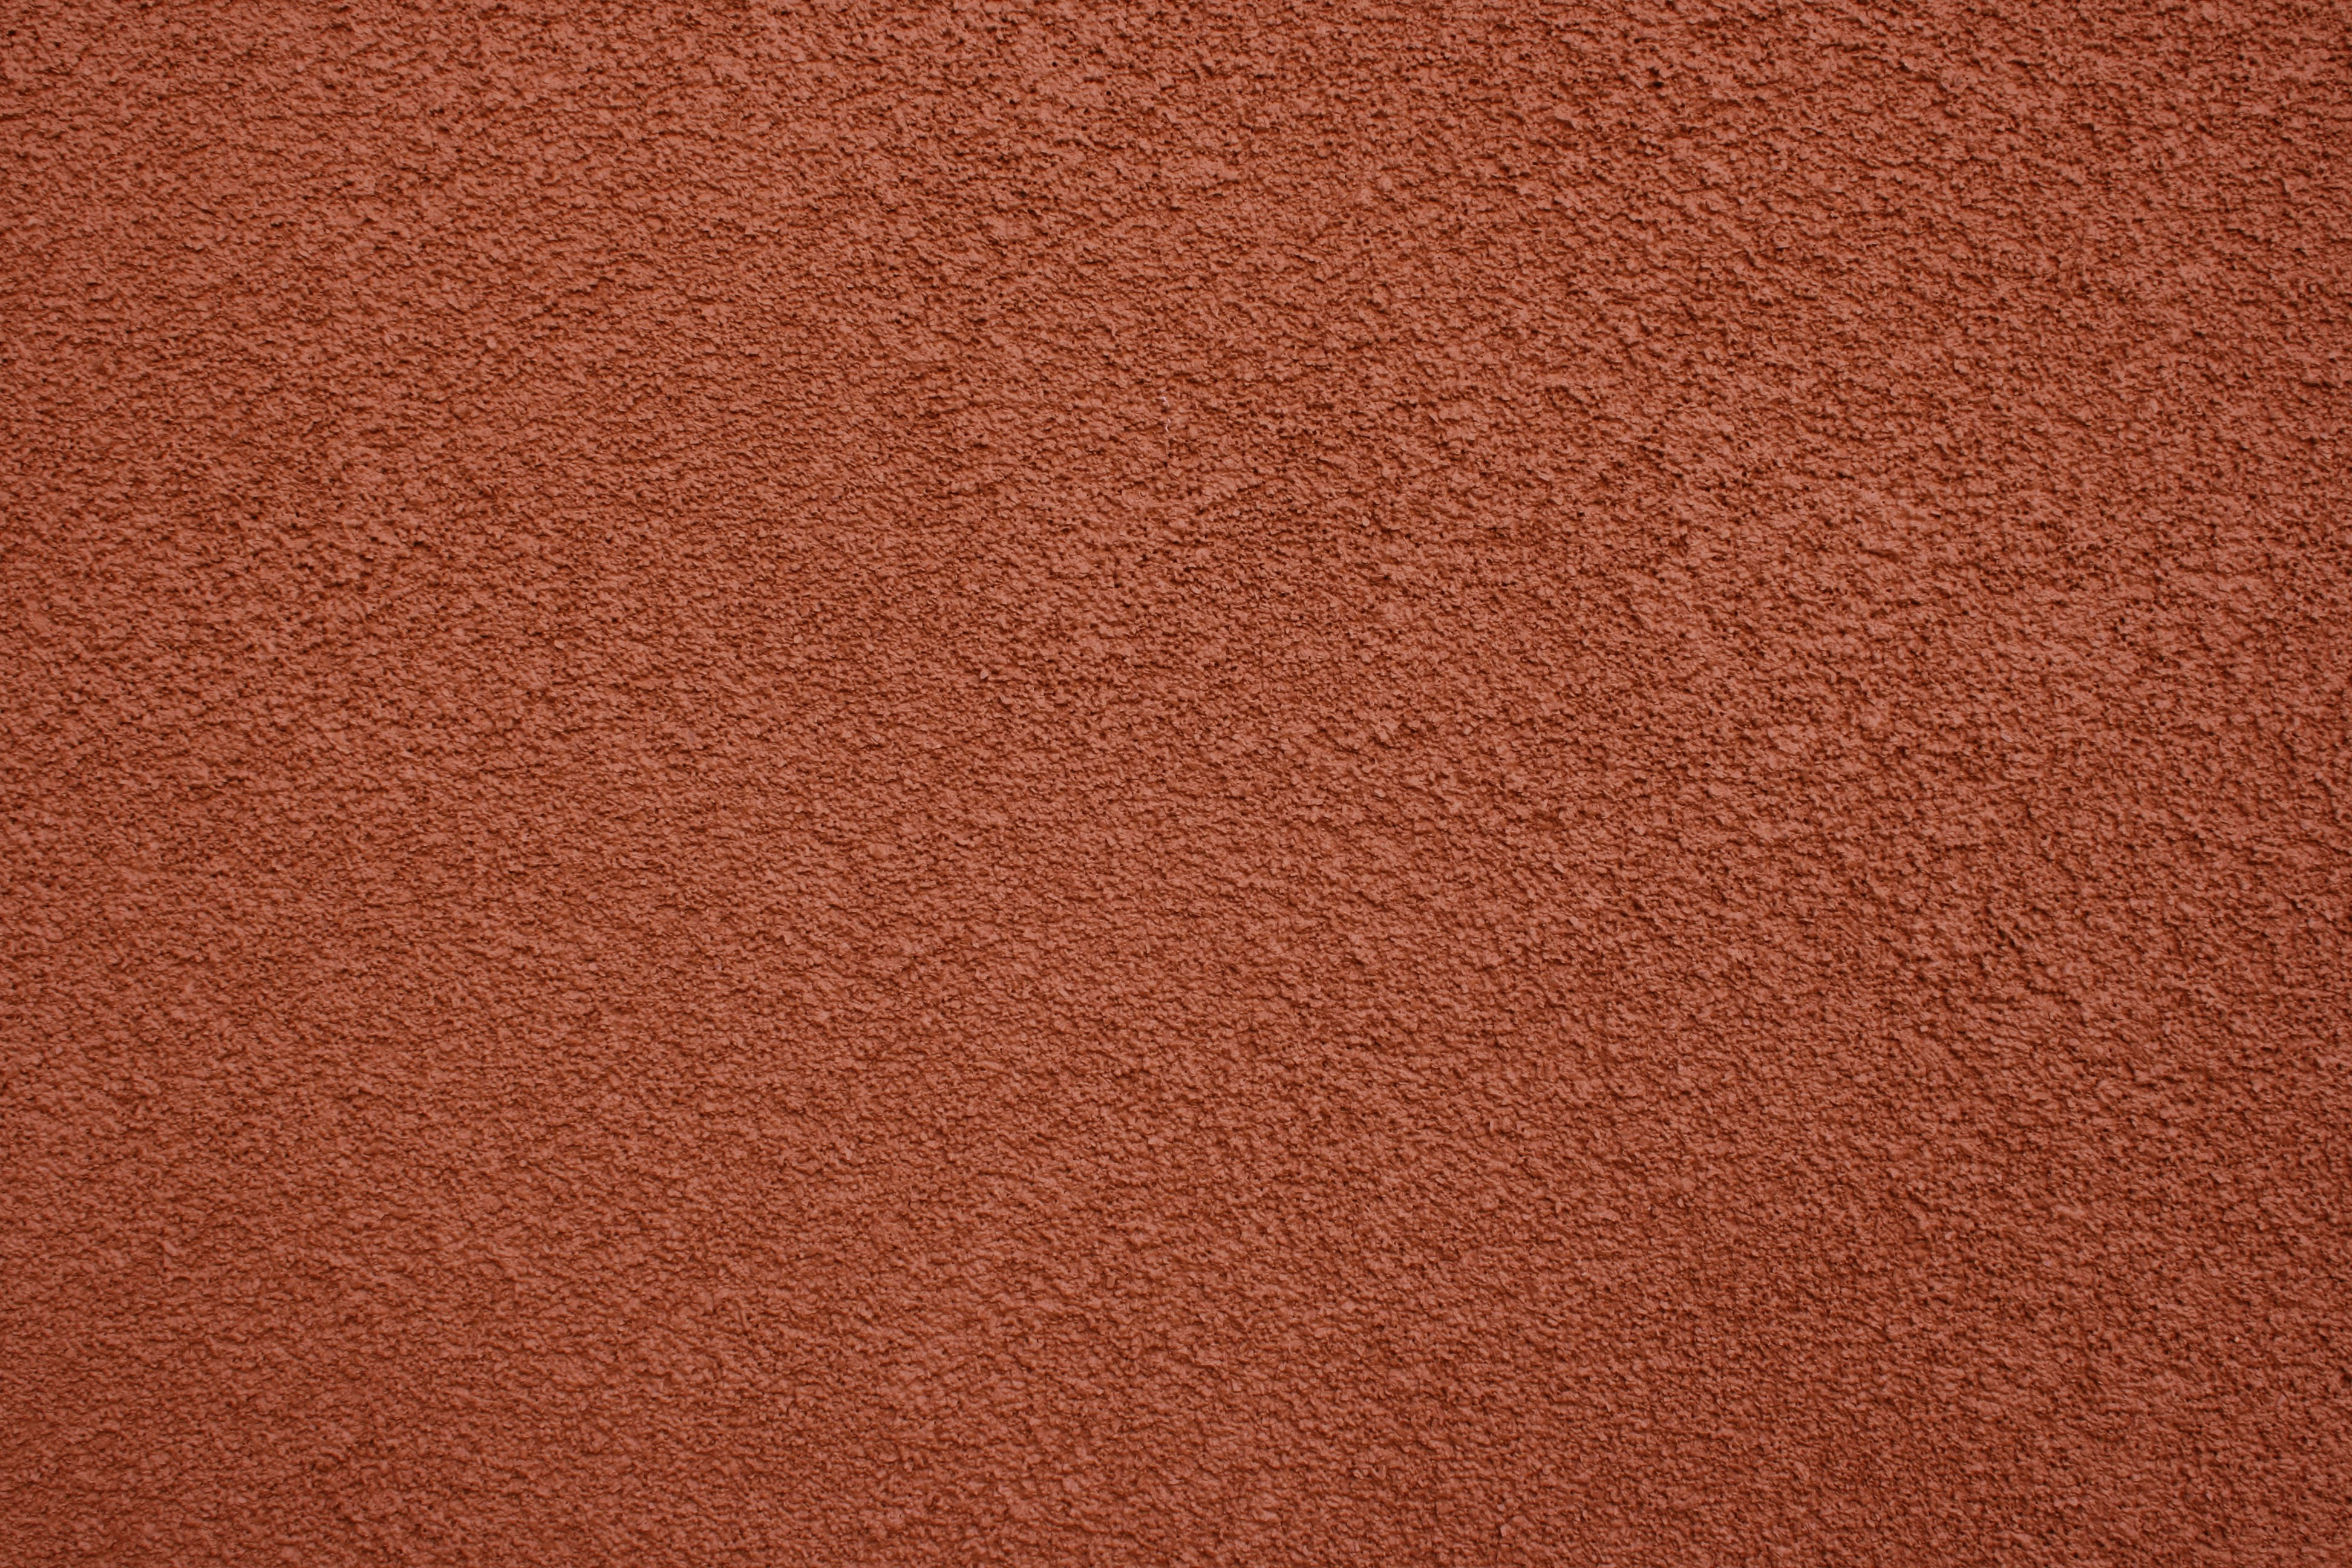 Terra cotta stucco wall texture picture free photograph for Brown wallpaper for walls